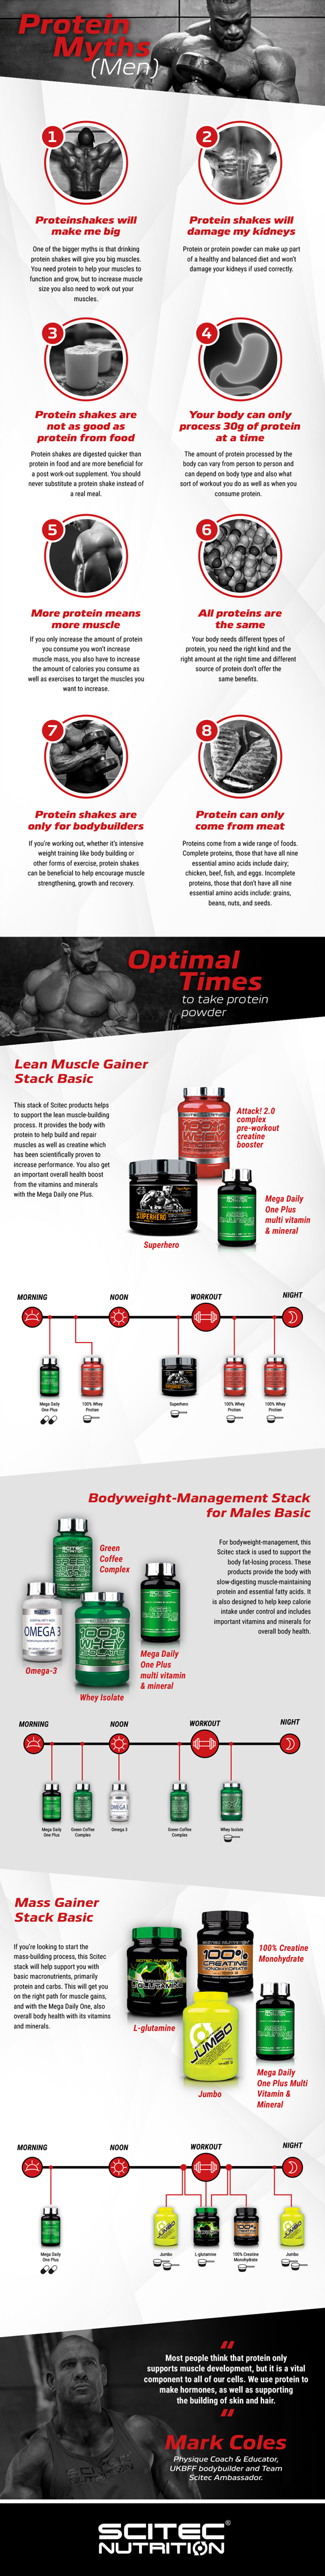 Scitec - Protein Myths Mens Infographic